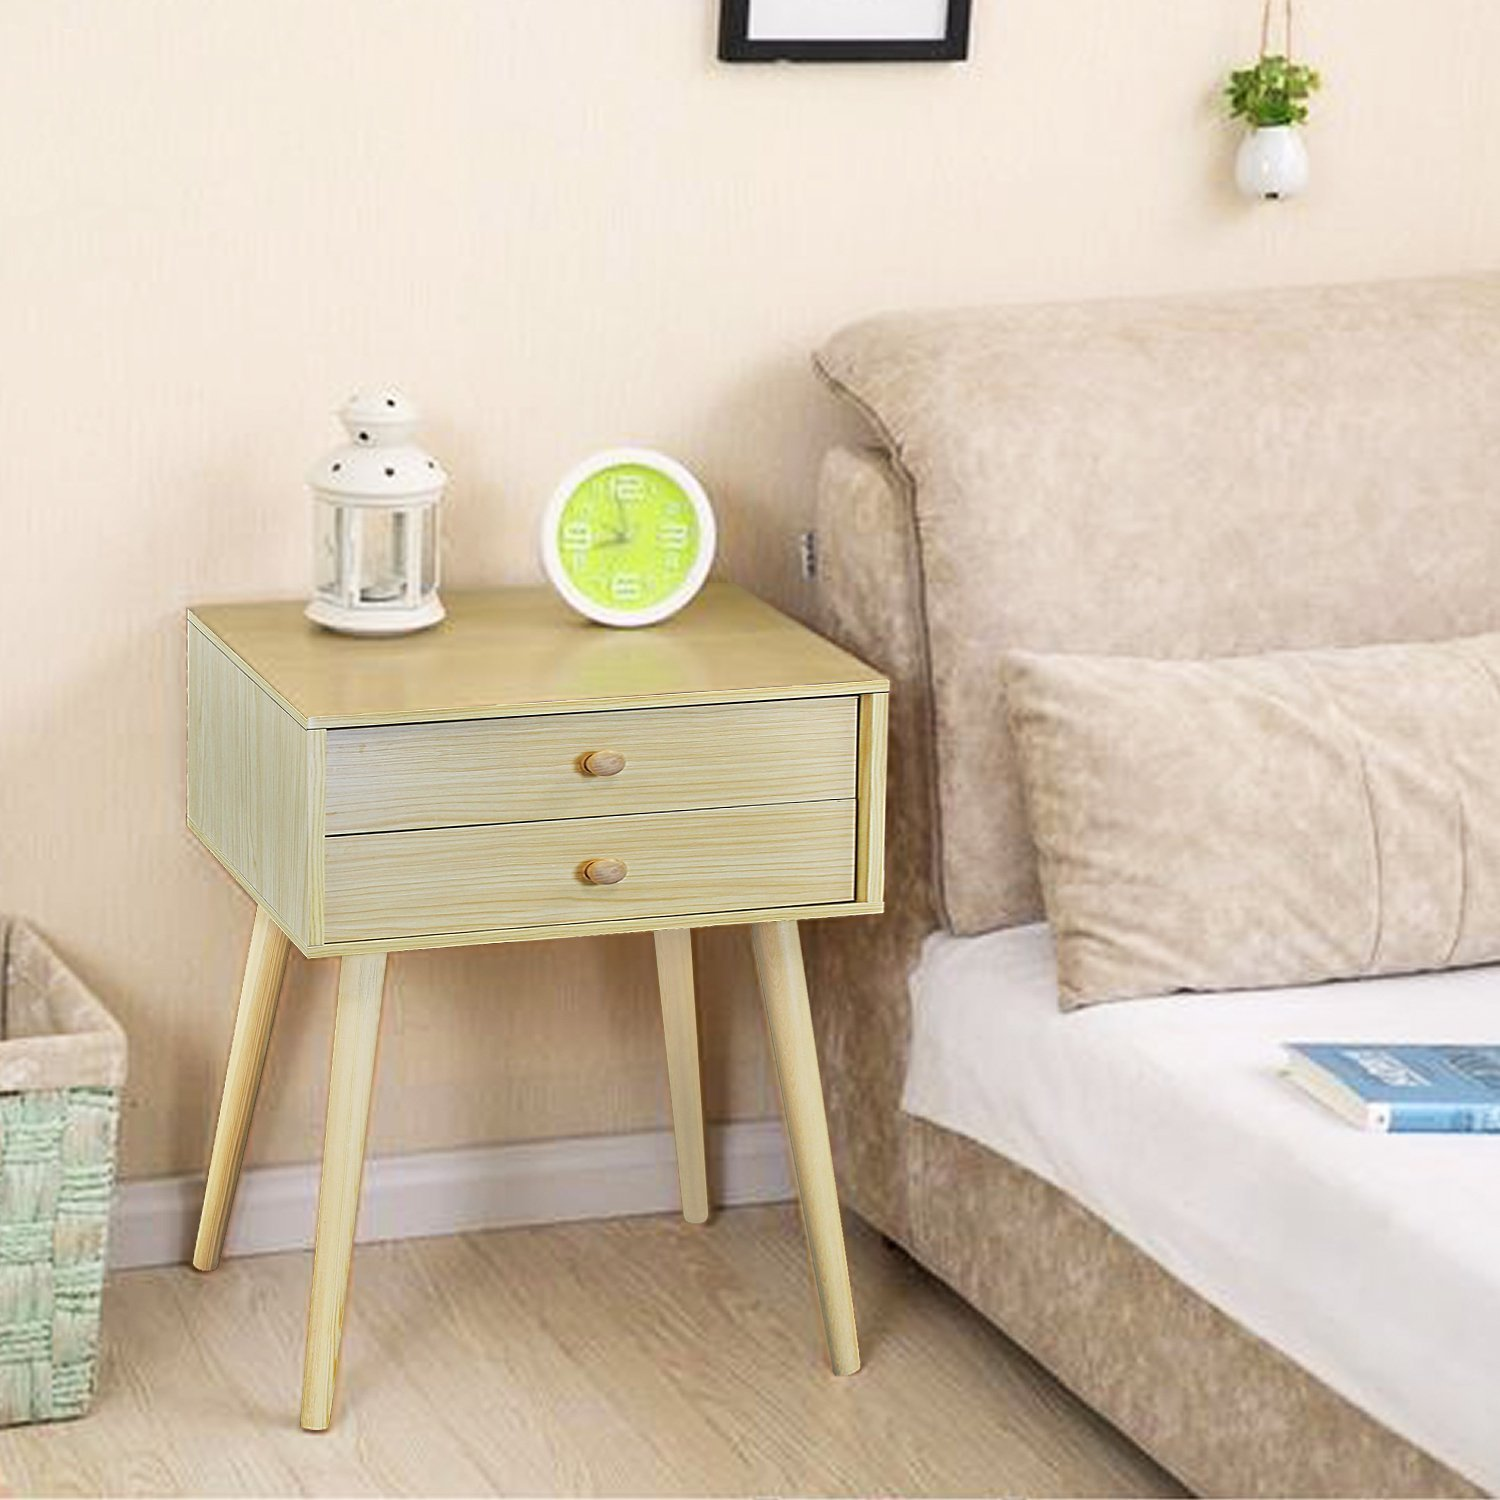 DL furniture - Side End Table Nightstand Bedroom Livingroom Table Cabinet with 2 Drawers | Natural Wood